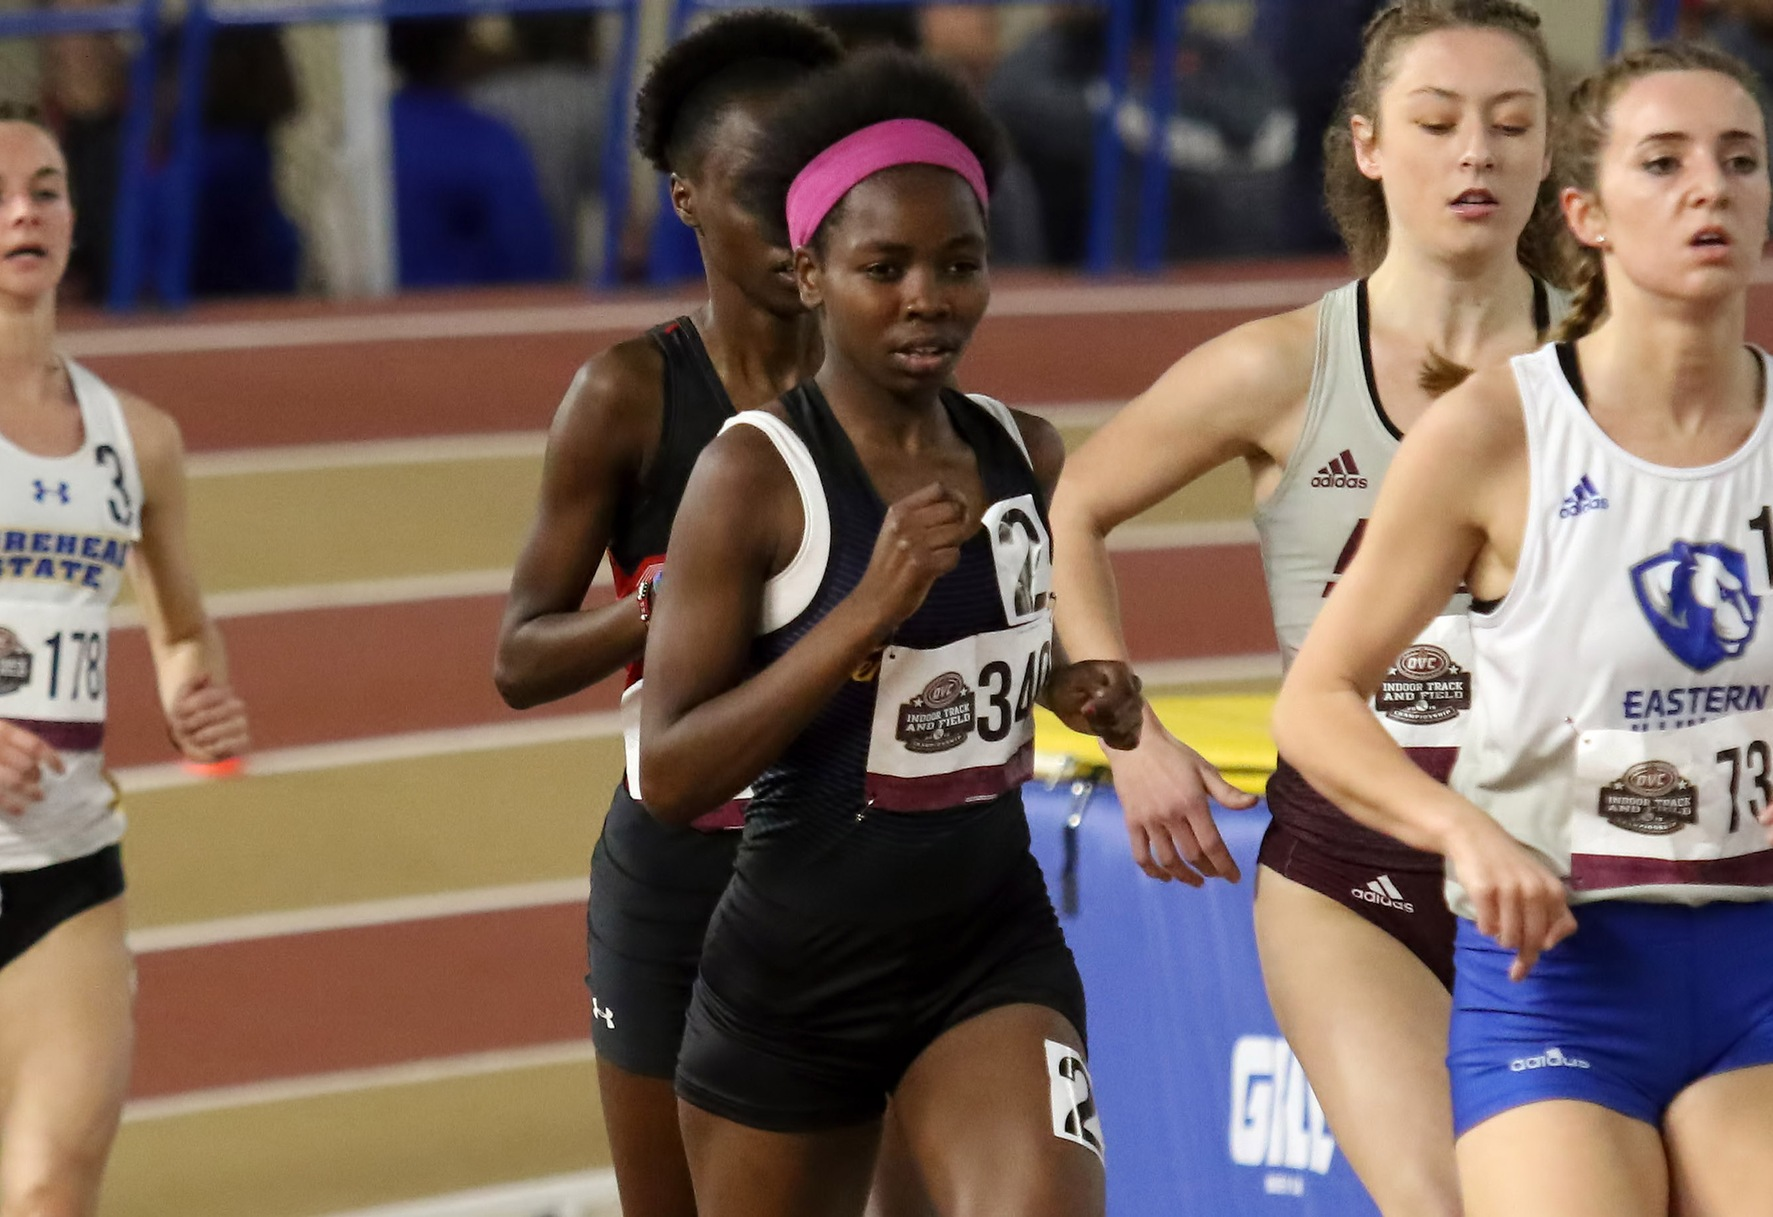 Chepkemboi scores first TTU points; Sanga, Roberts, Tate advance out of prelims to begin OVC Championships